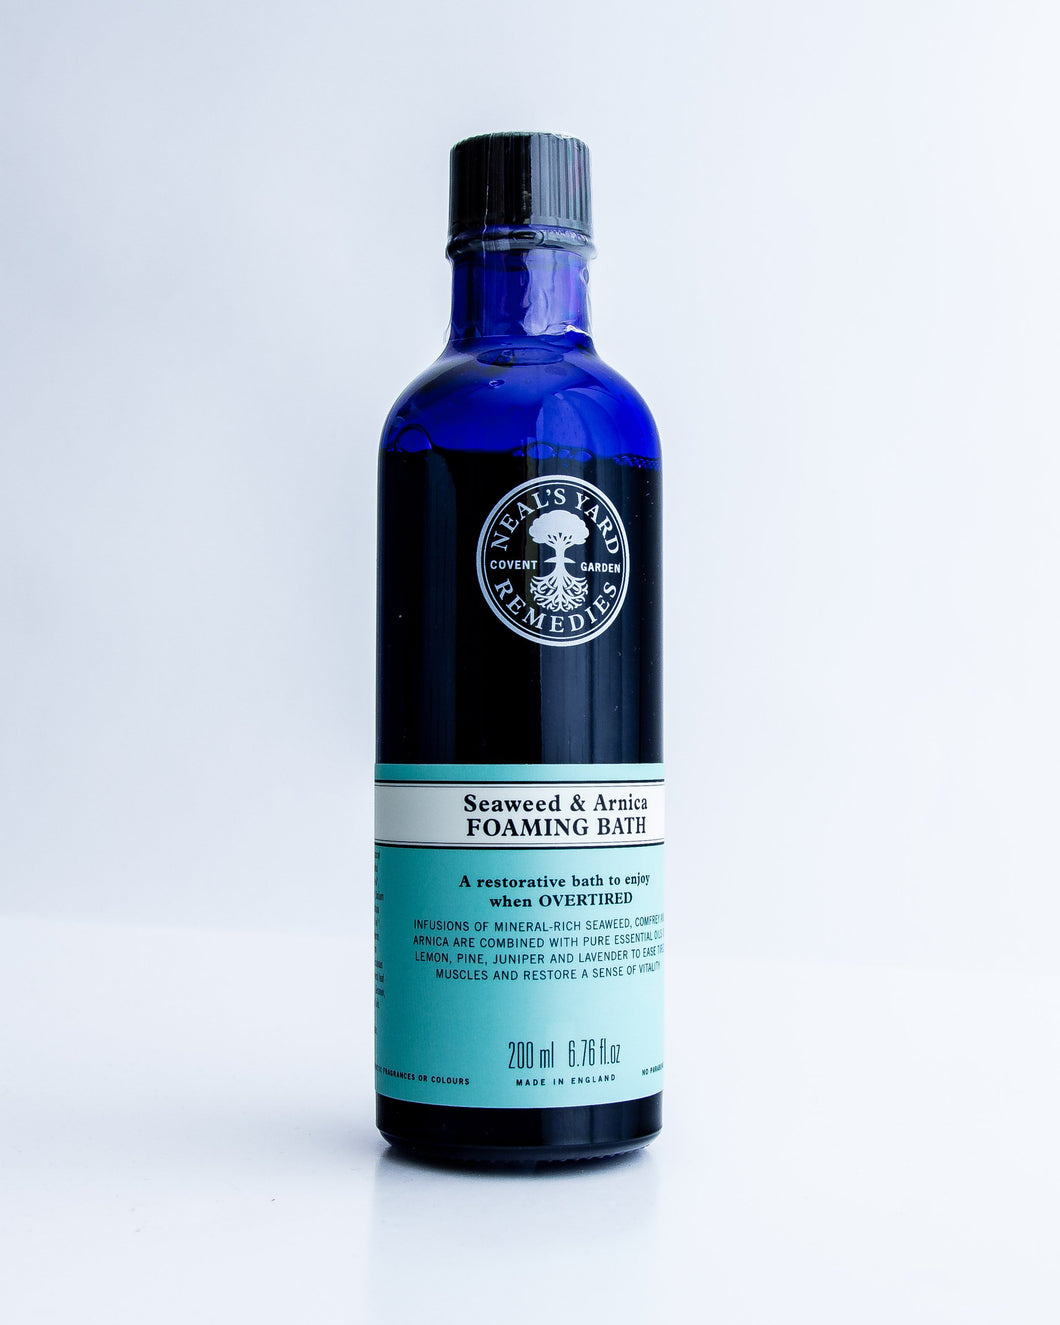 NYR Seaweed & Arnica Foaming Bath 200ml